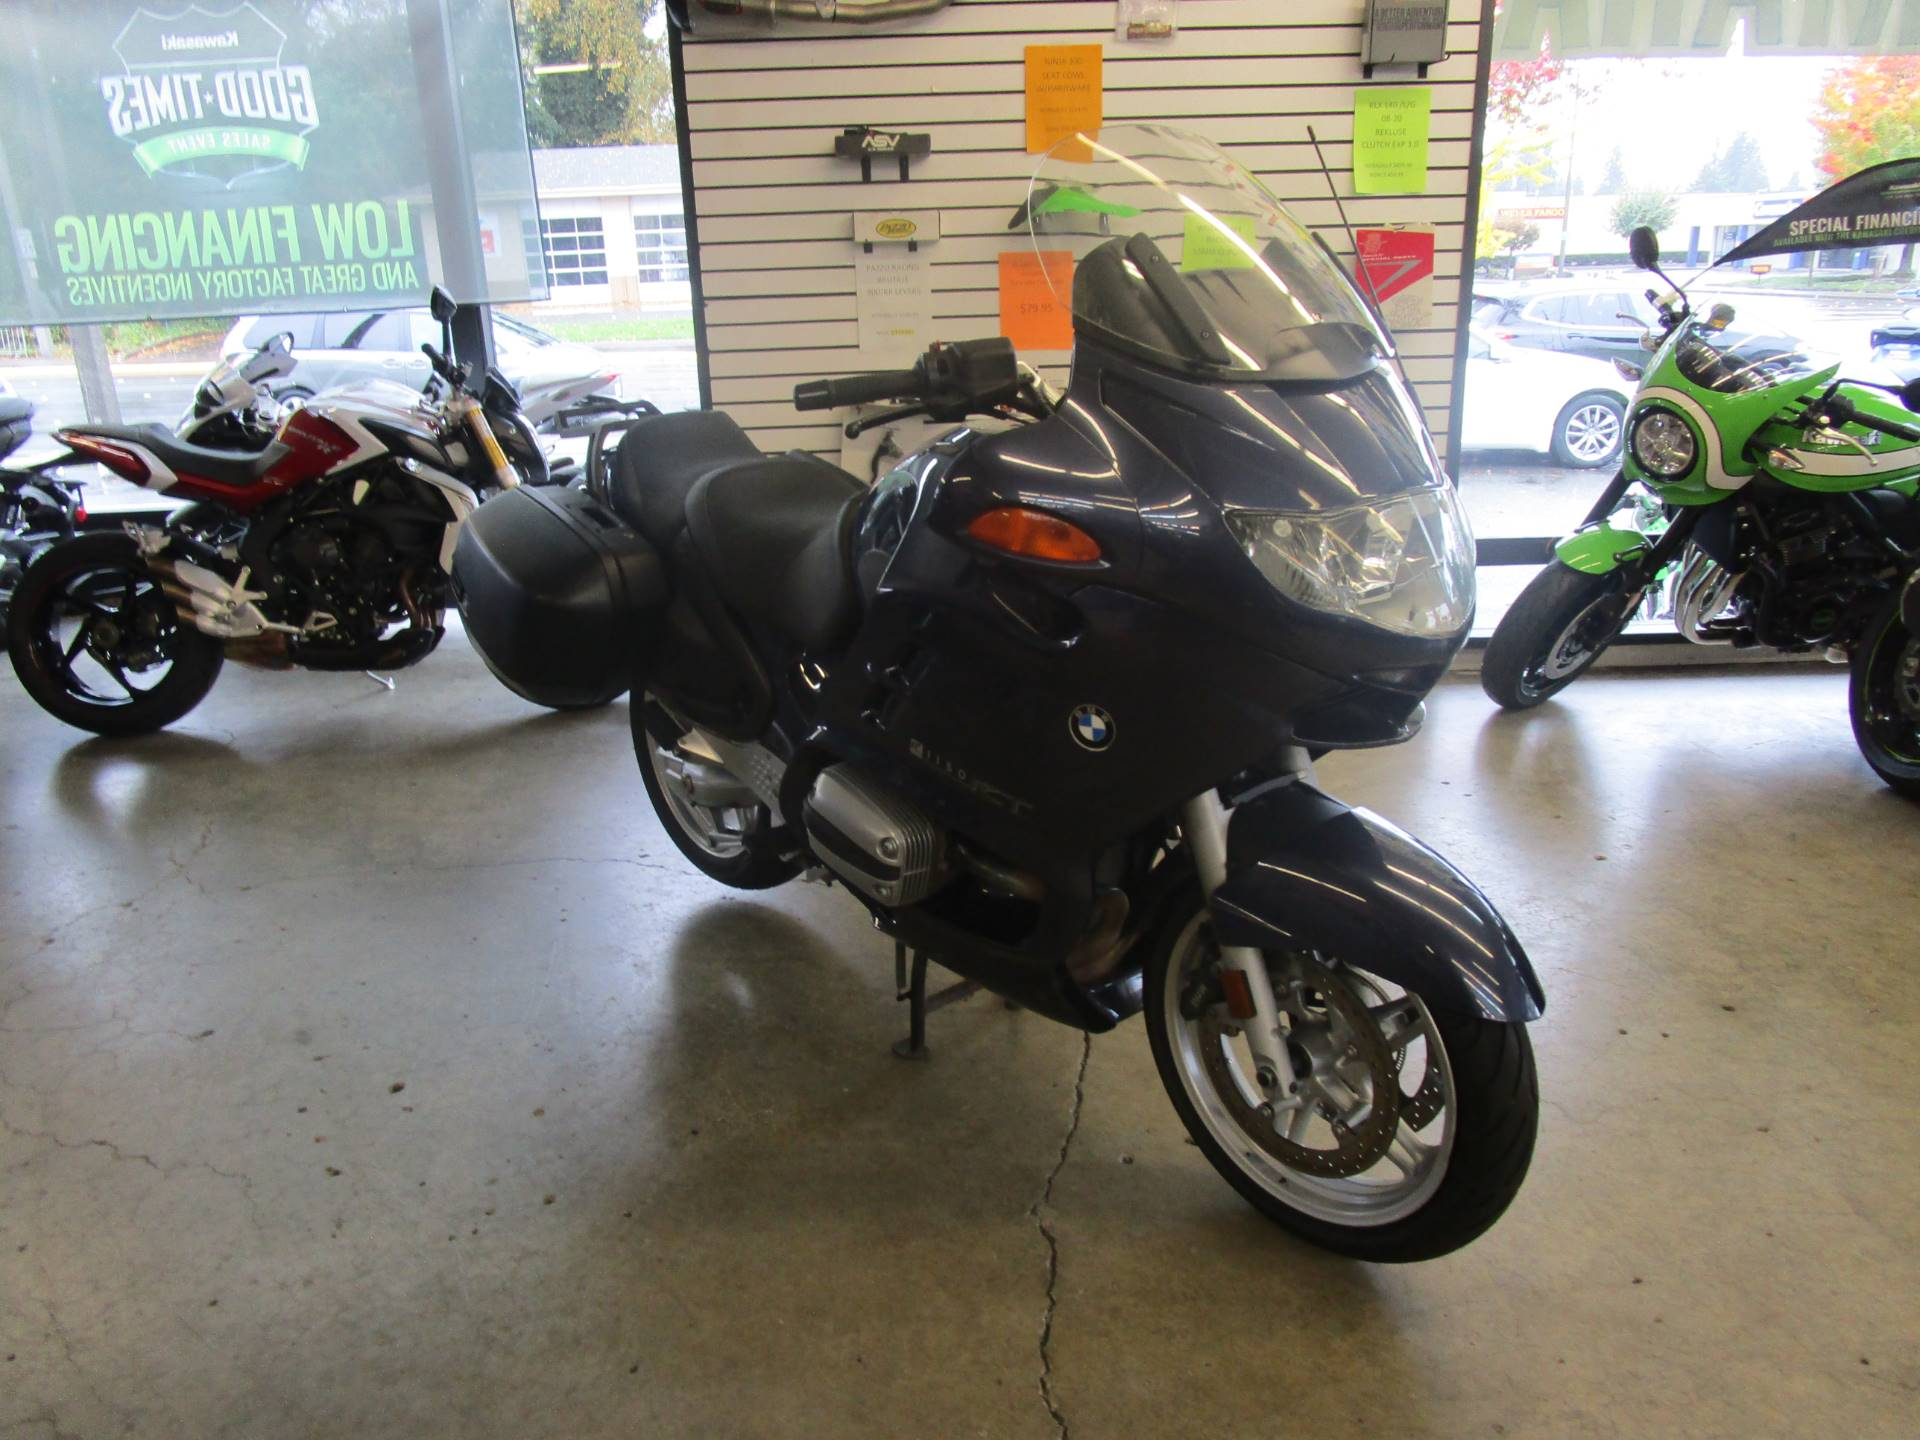 2002 BMW R 1150 RT in Bellevue, Washington - Photo 5